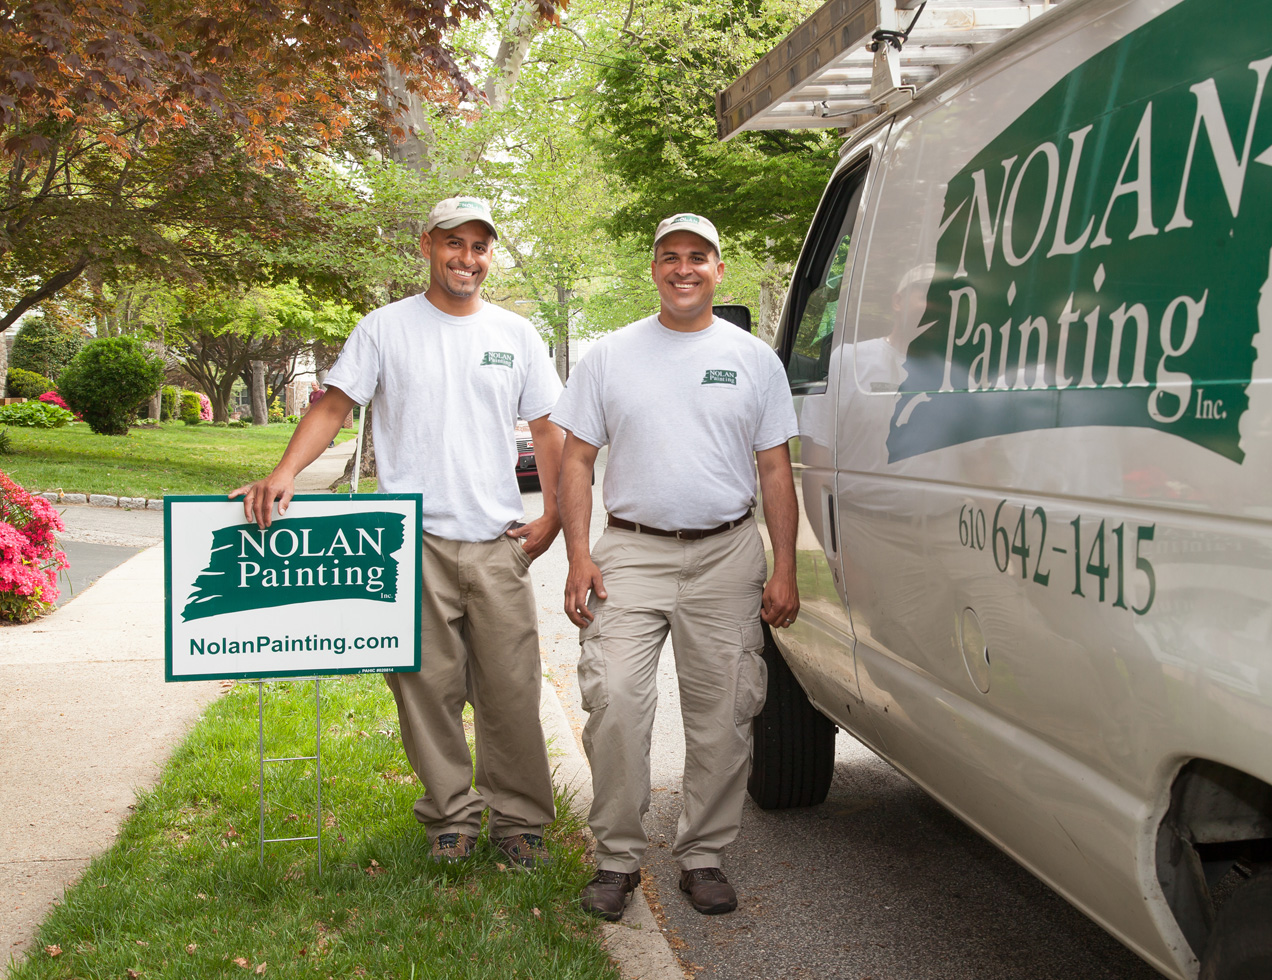 Inquirer Names Havertown's Nolan Painting a Top Workplace in the Delaware Valley